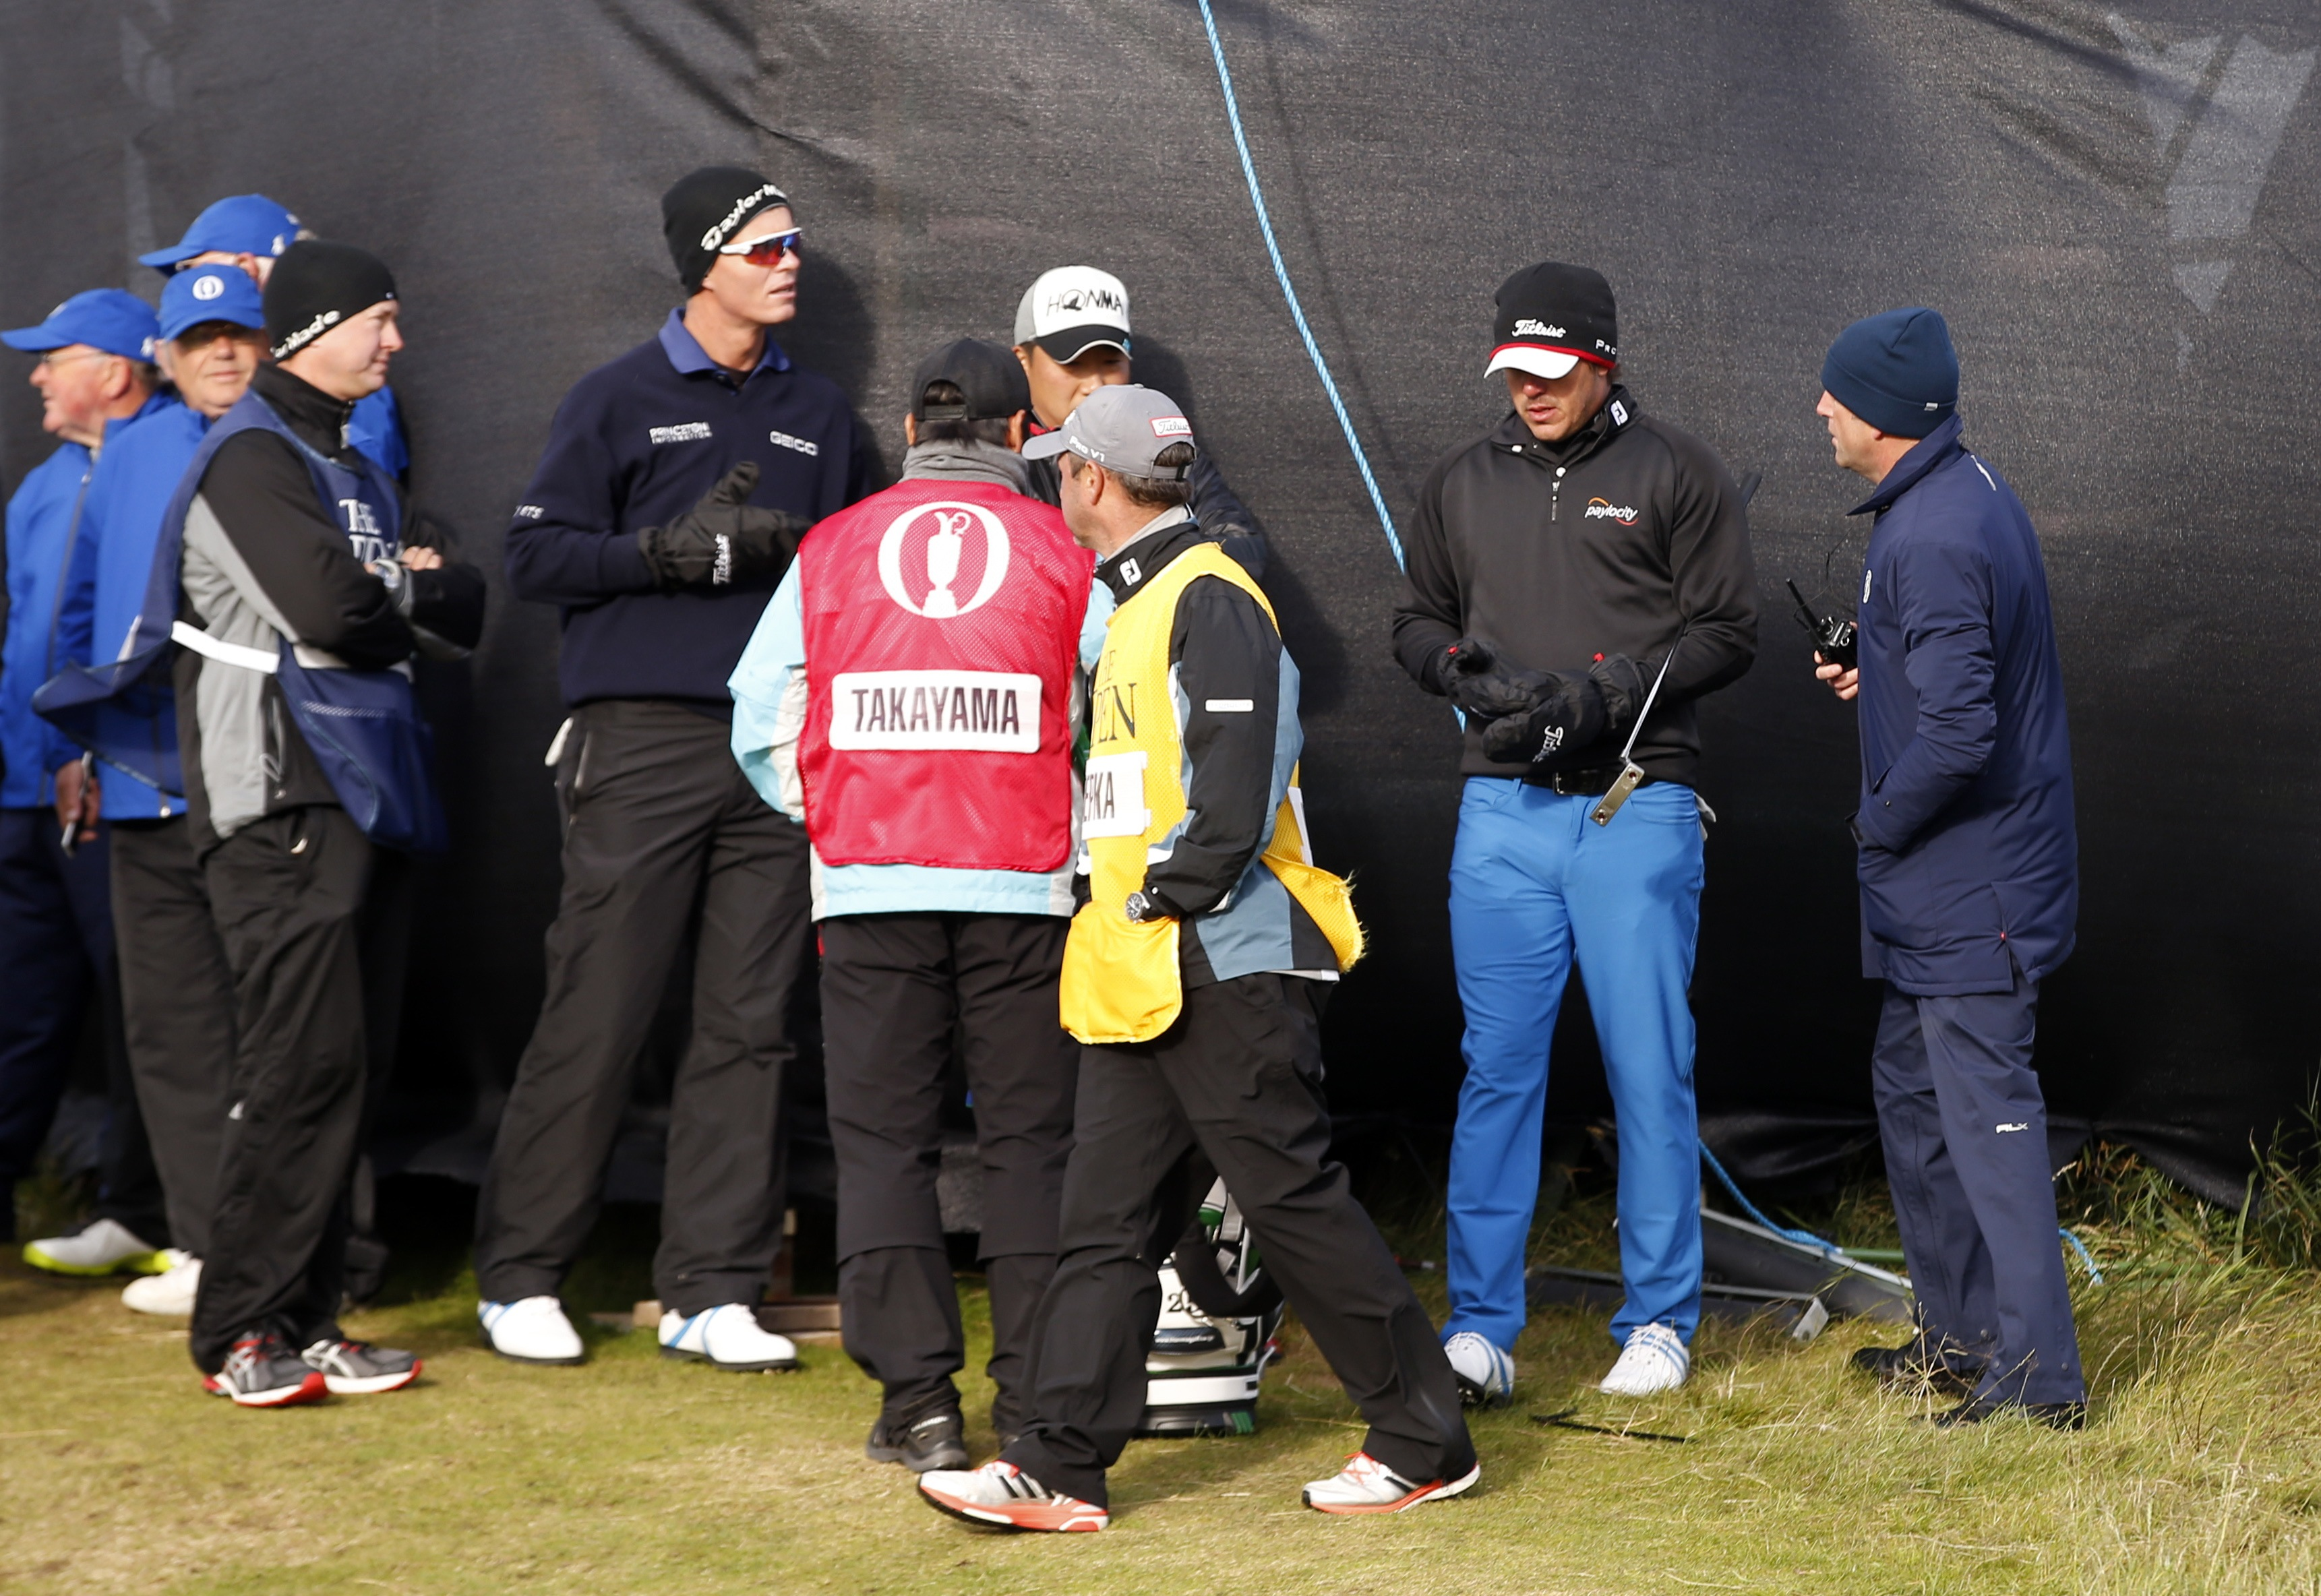 United States' Brooks Koepka, second from right, and others listen to an official as strong winds suspend play during the second round of the British Open Golf Championship at the Old Course, St. Andrews, Scotland, Saturday, July 18, 2015. Play was suspen